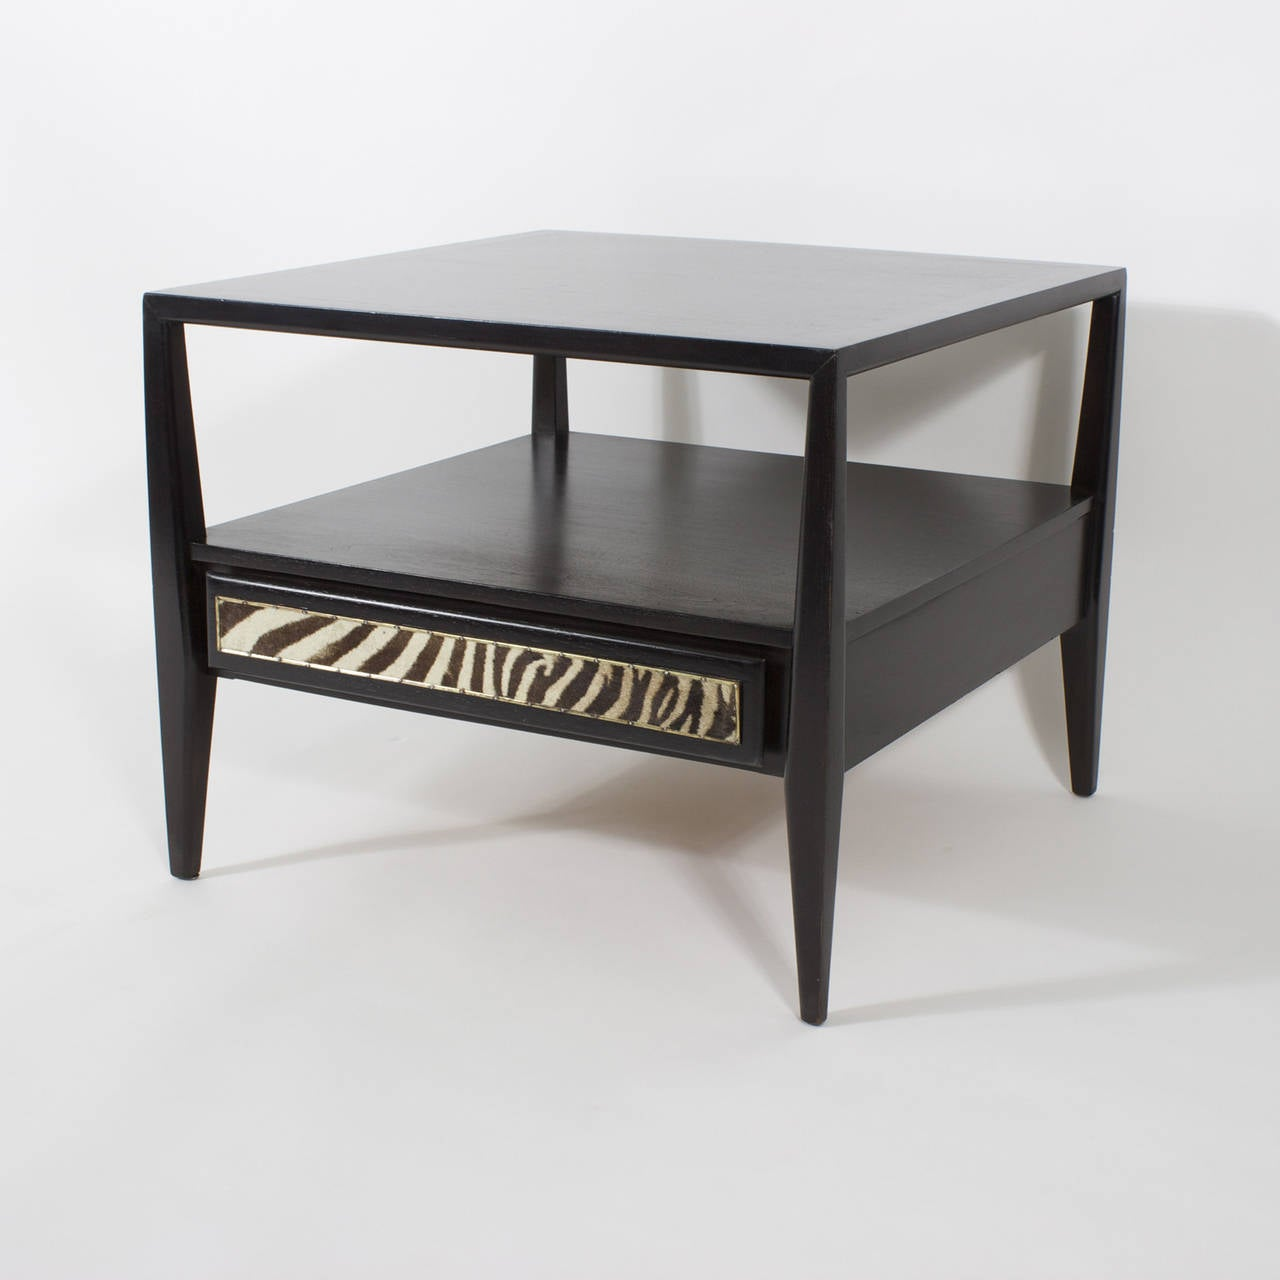 Merveilleux Mid Century Elegance Combined With The Warm Burchell Zebra Hide Drawer  Fronts And Ebonized Finish